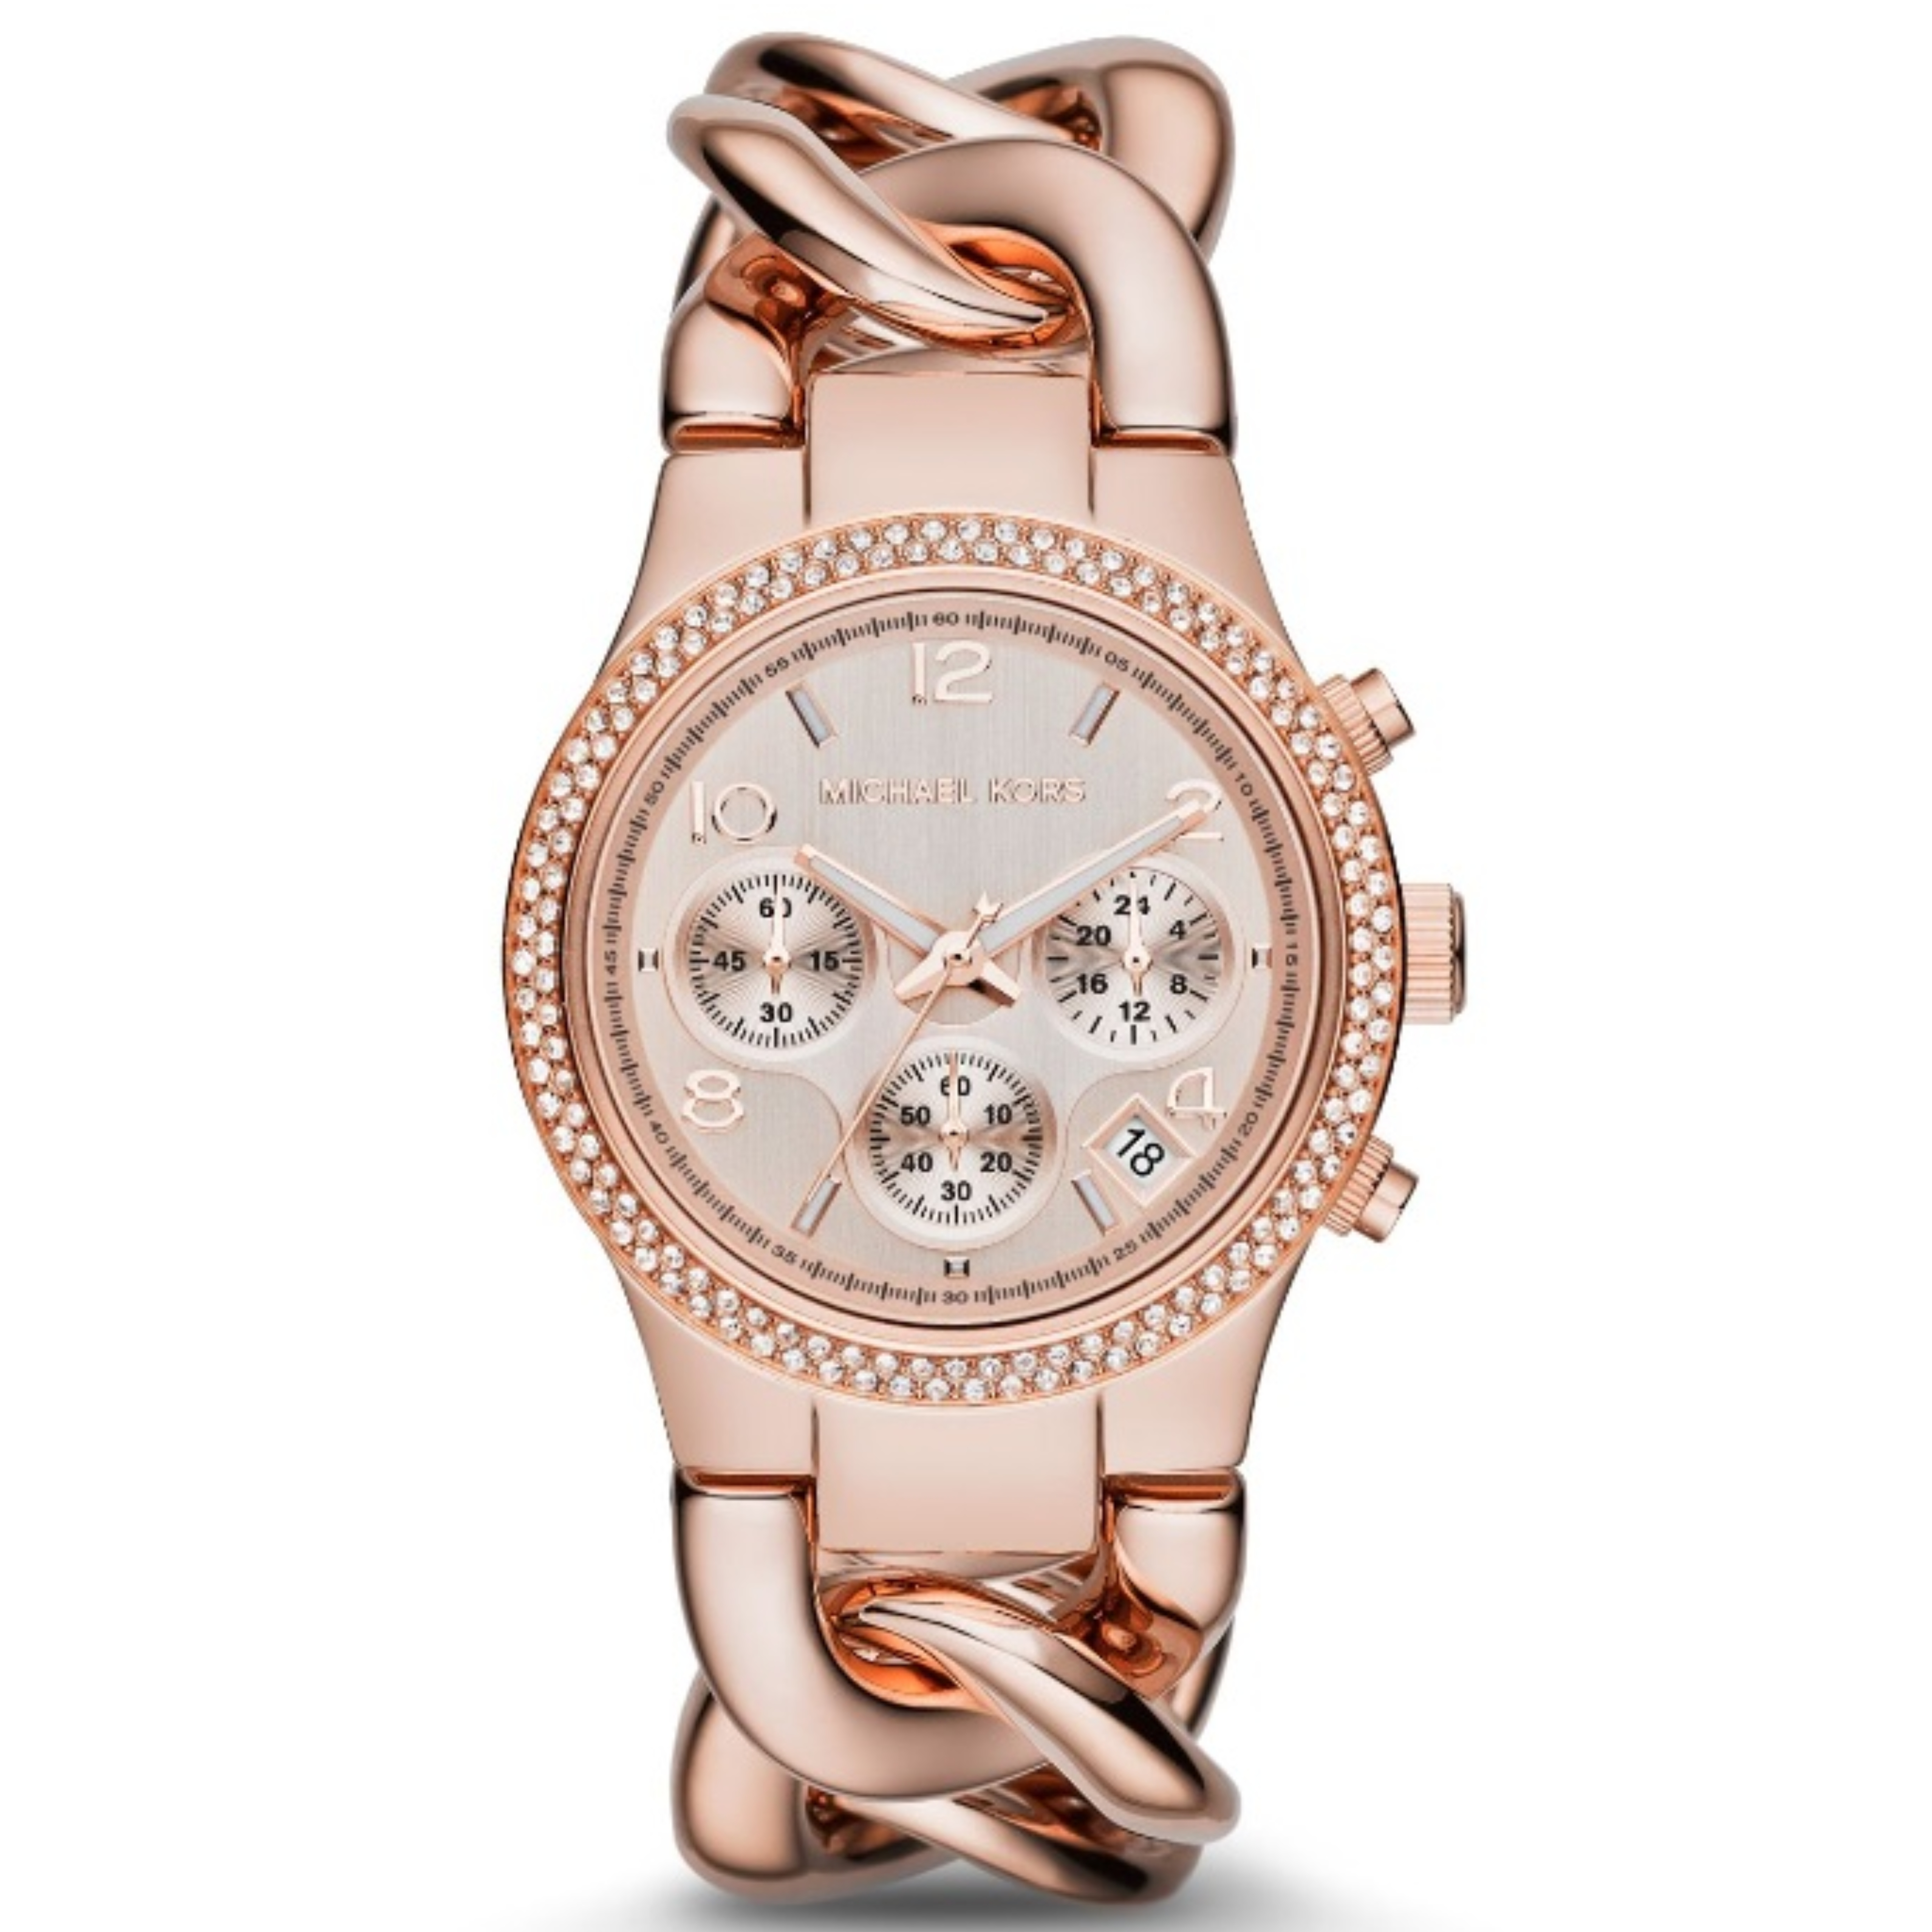 8f09d89a5755 Details about Michael Kors Runway Ladies Watch MK3247│Rose Gold Dial│Ion  Plated Twist Bracelet